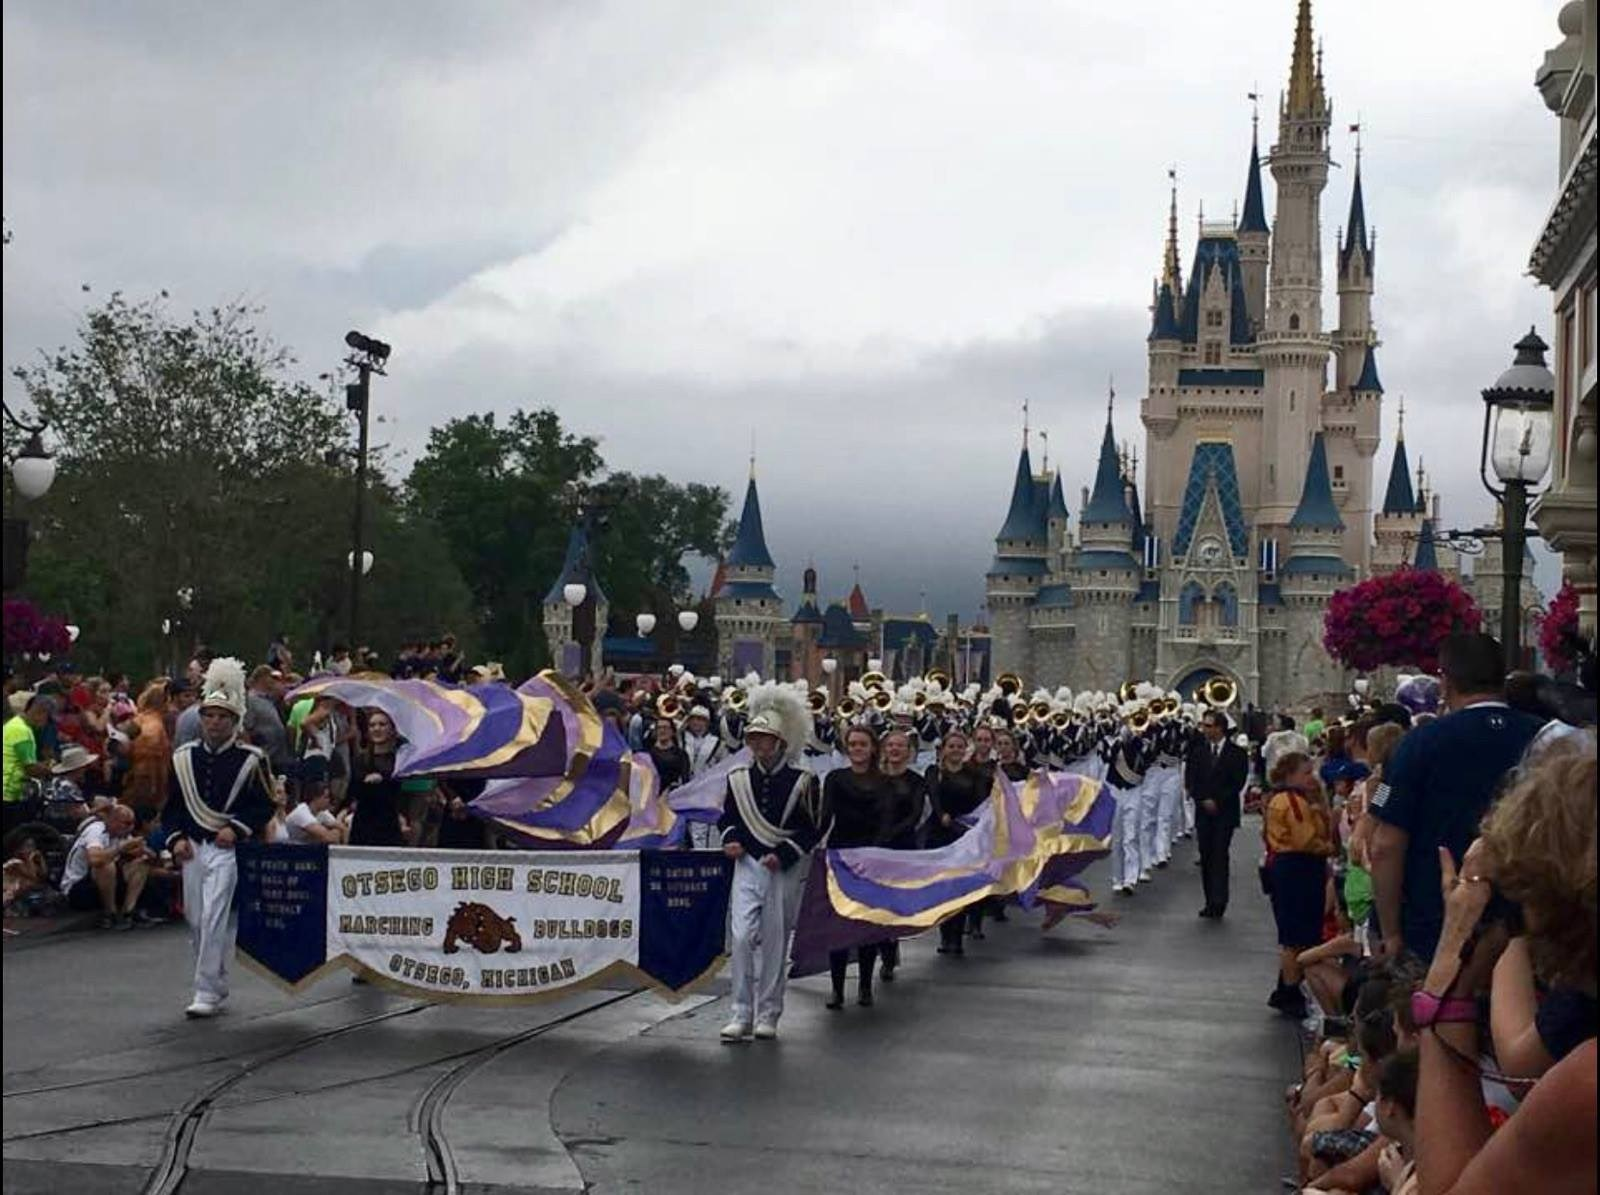 The OHS Marching Band performing in the parade at Disney World's Magic Kingdom.